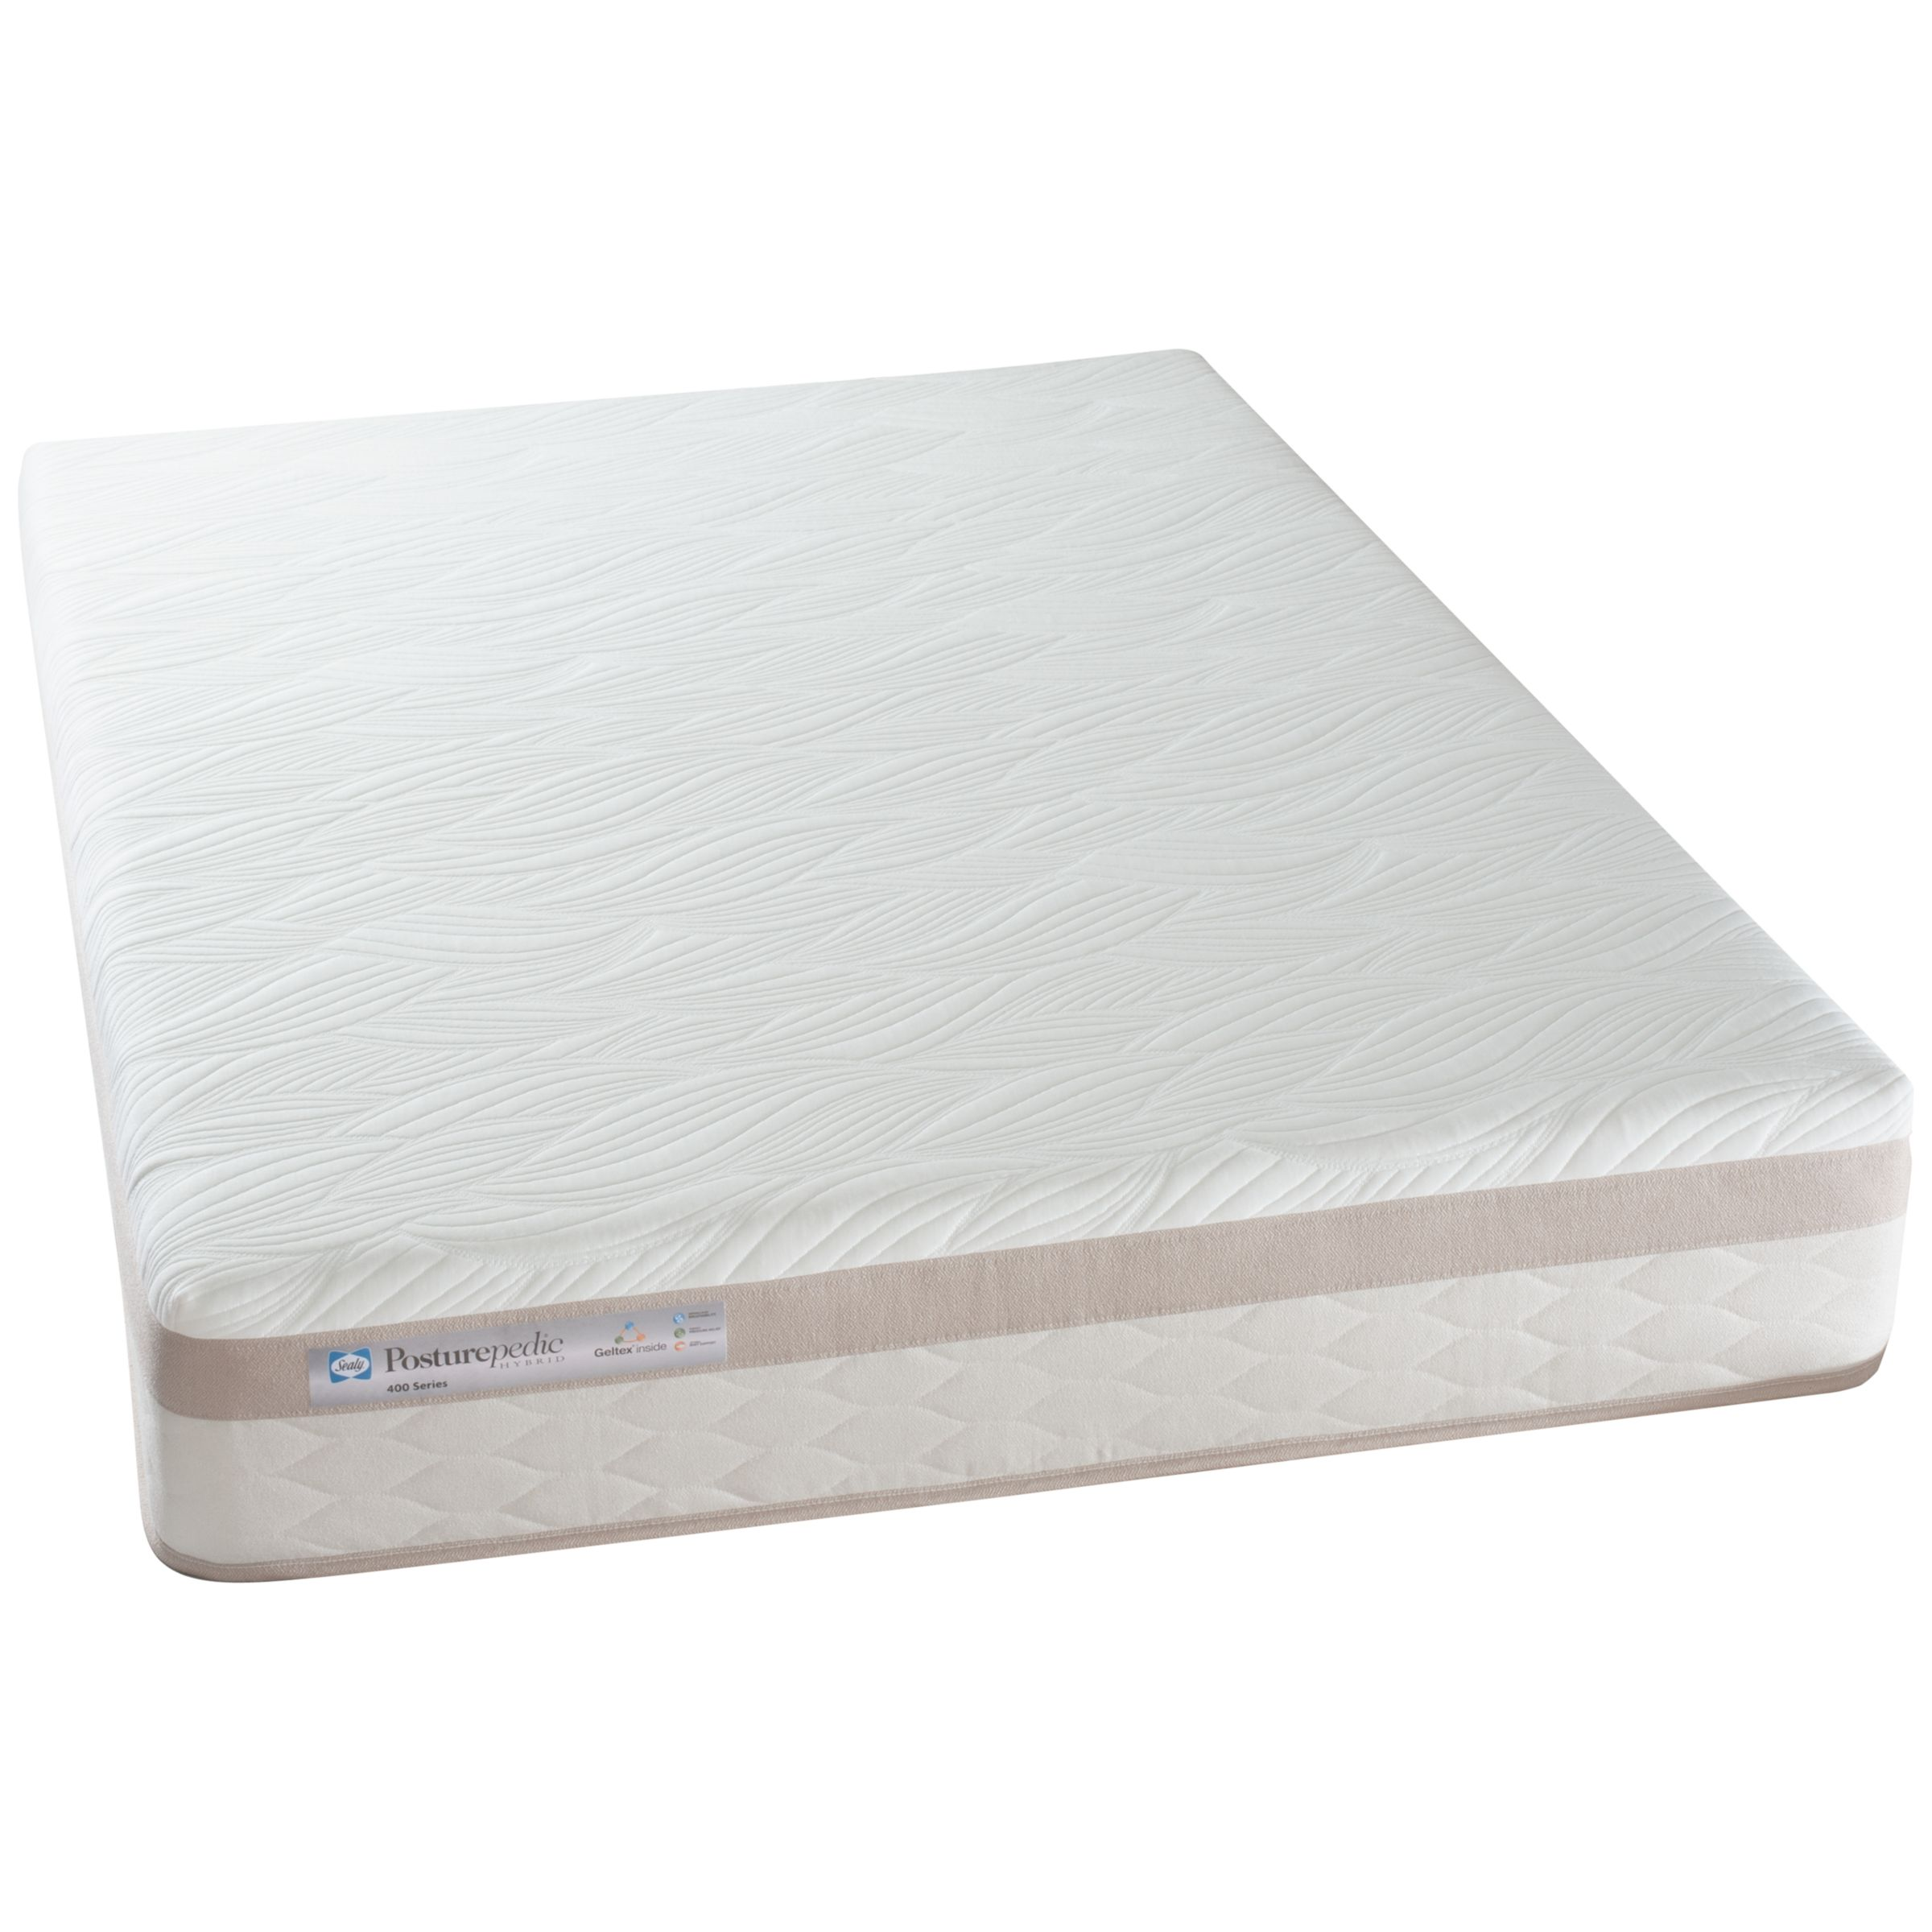 Sealy Posturepedic Hybrid Series 400 Mattress, Kingsize